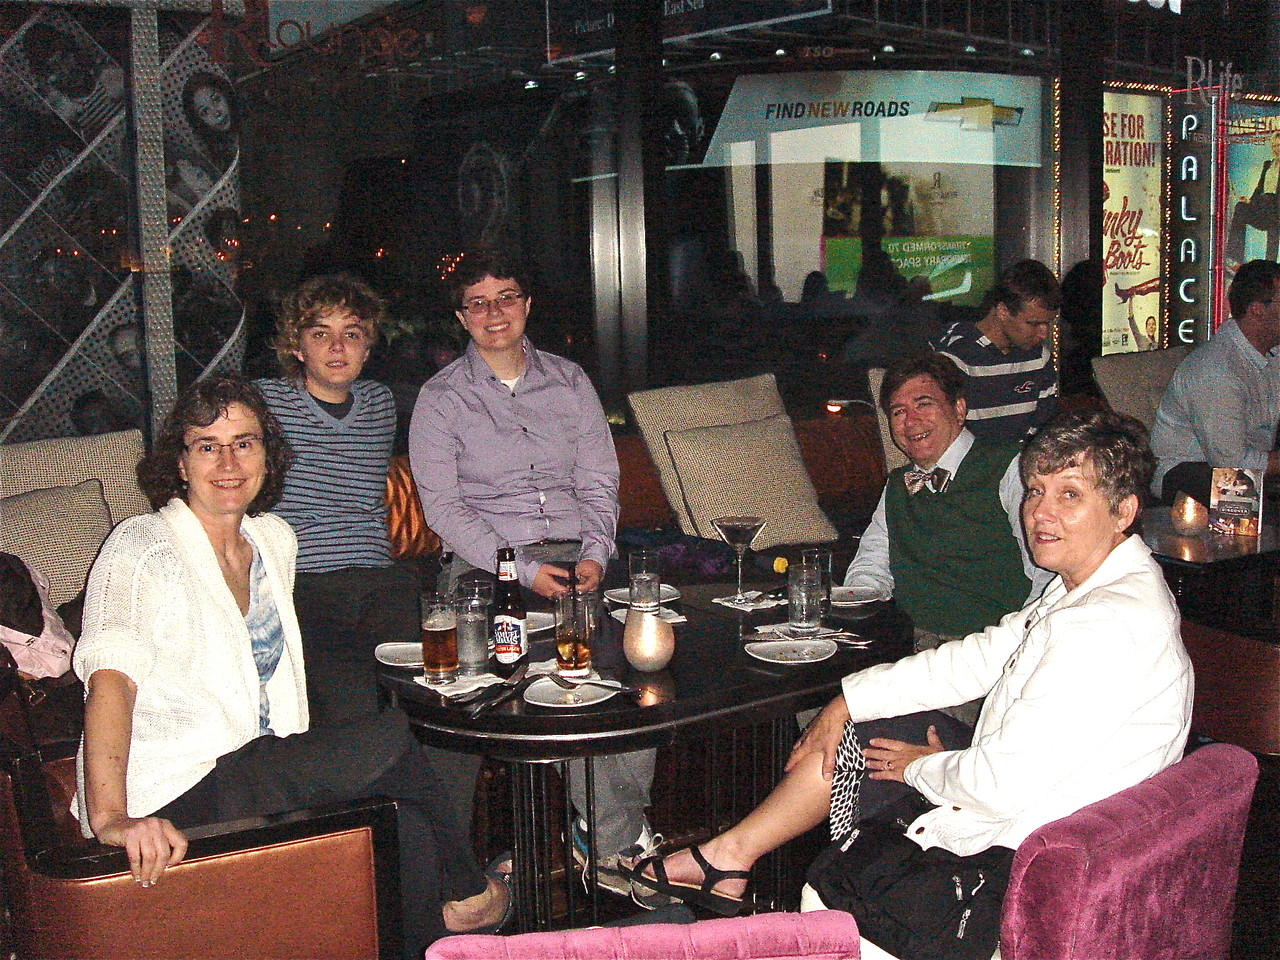 Ann, Kathleen, Emilea, John, & Cindy, dinner in Times Square 6-13-2013